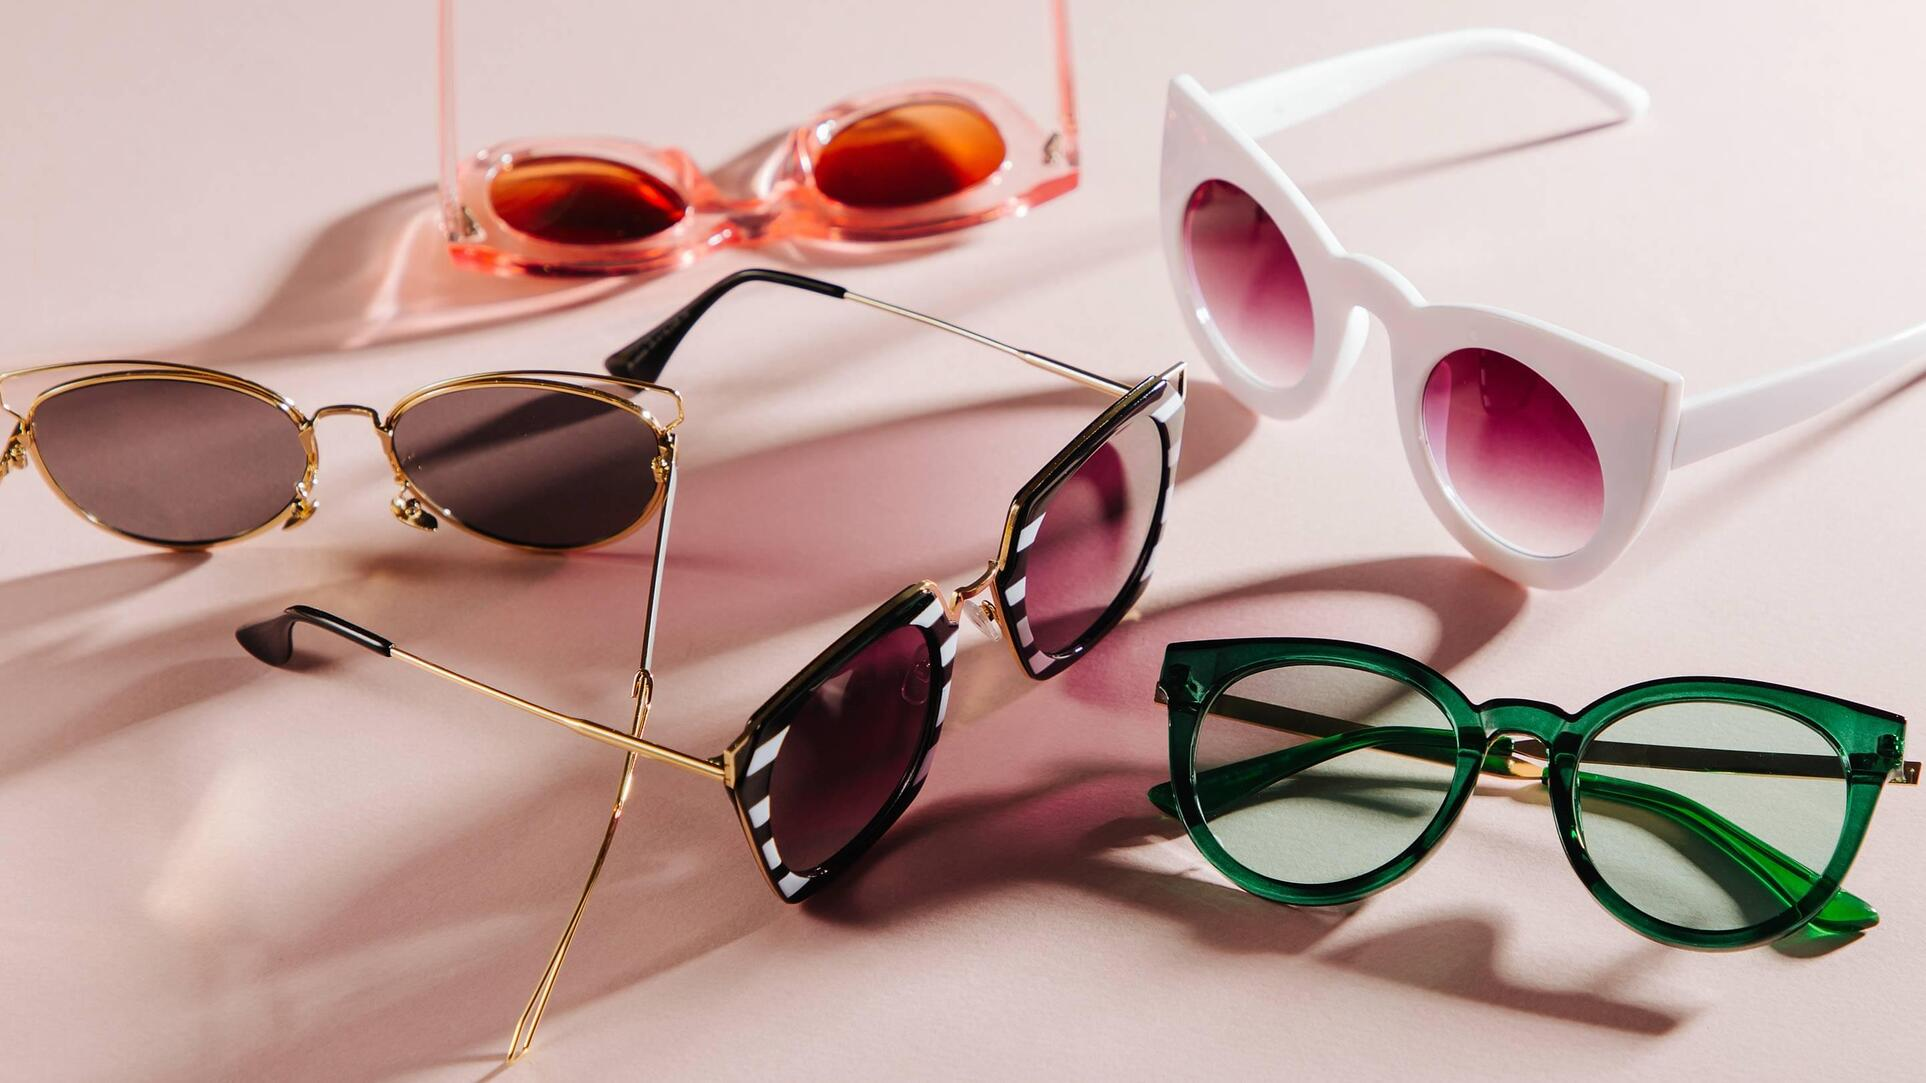 Consider light lens tints for wearing colorful eyewear indoors.